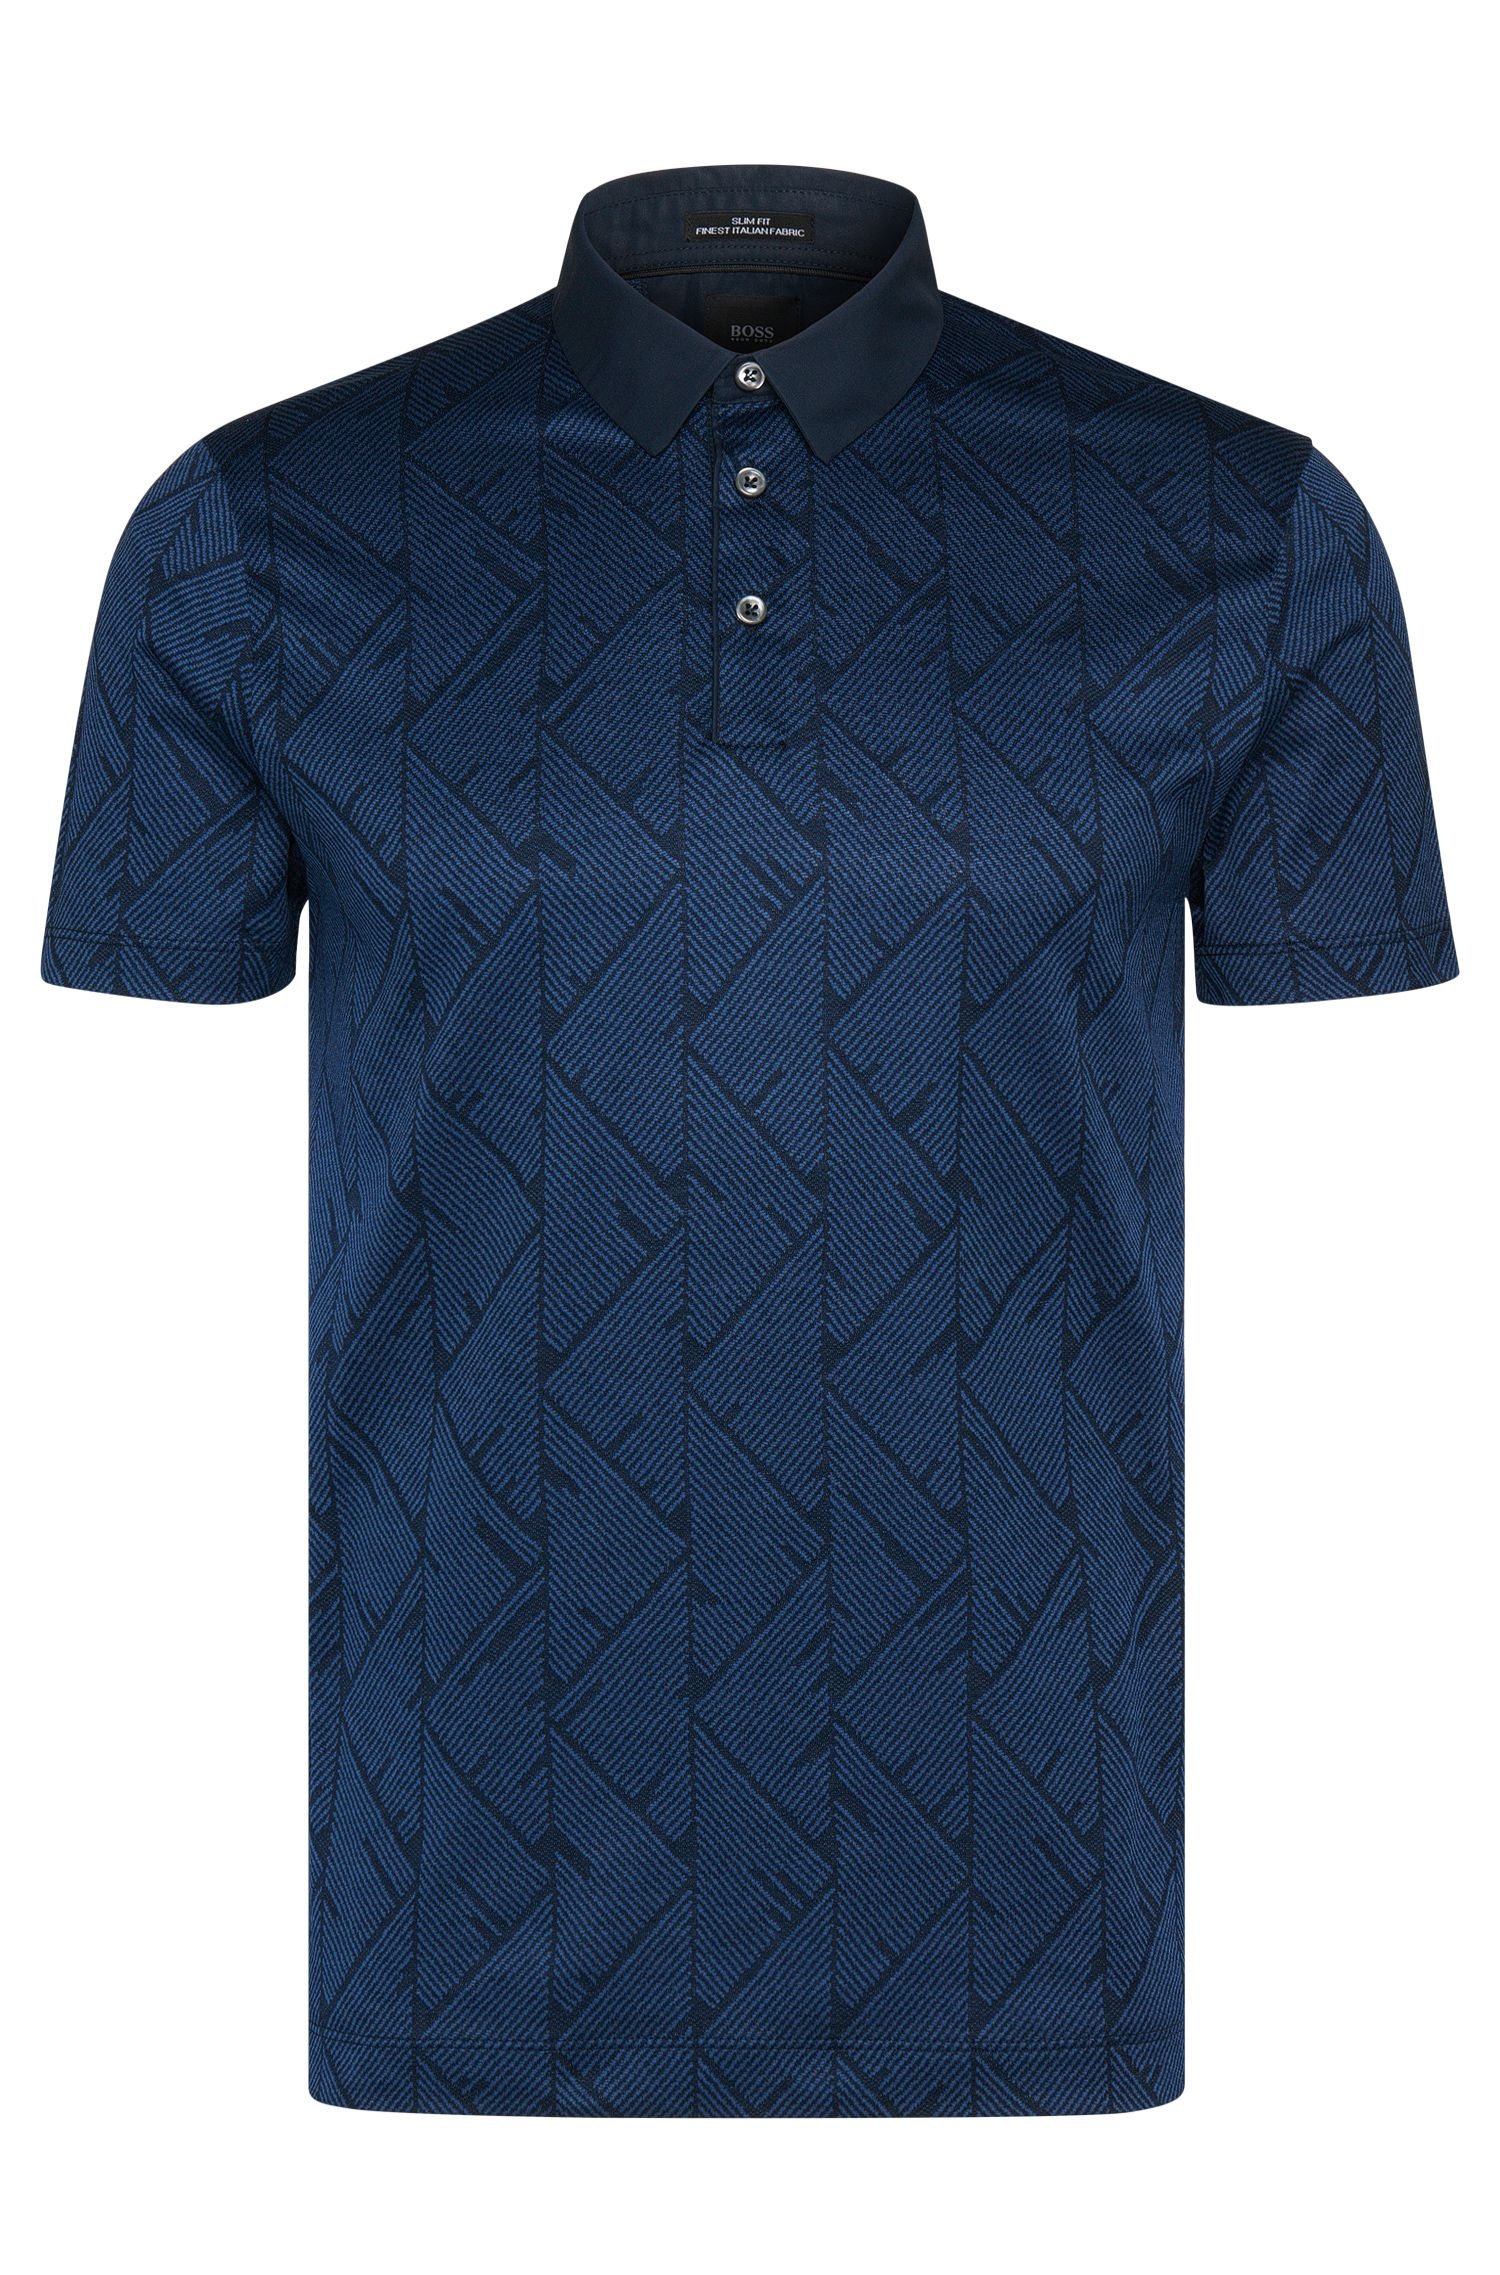 'T-Pryde' | Slim Fit, Italian Cotton Jacquard Polo Shirt